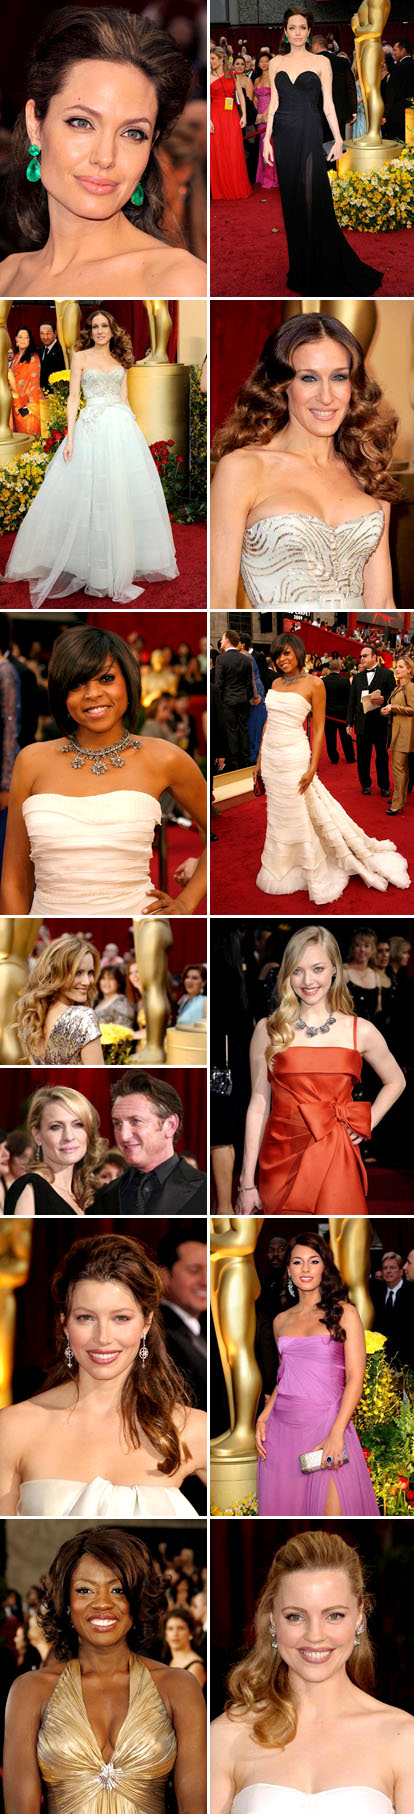 Hairstyles and fashion from the 2009 Academy Awards red carpet, bridal inspiration, Angelina Jolie, Jessica Biel, Sarah Jessica Parker, Robin Wright Penn, Amanda Seyfried, Alicia Keys, Taraji P. Henson, and Viola Davis